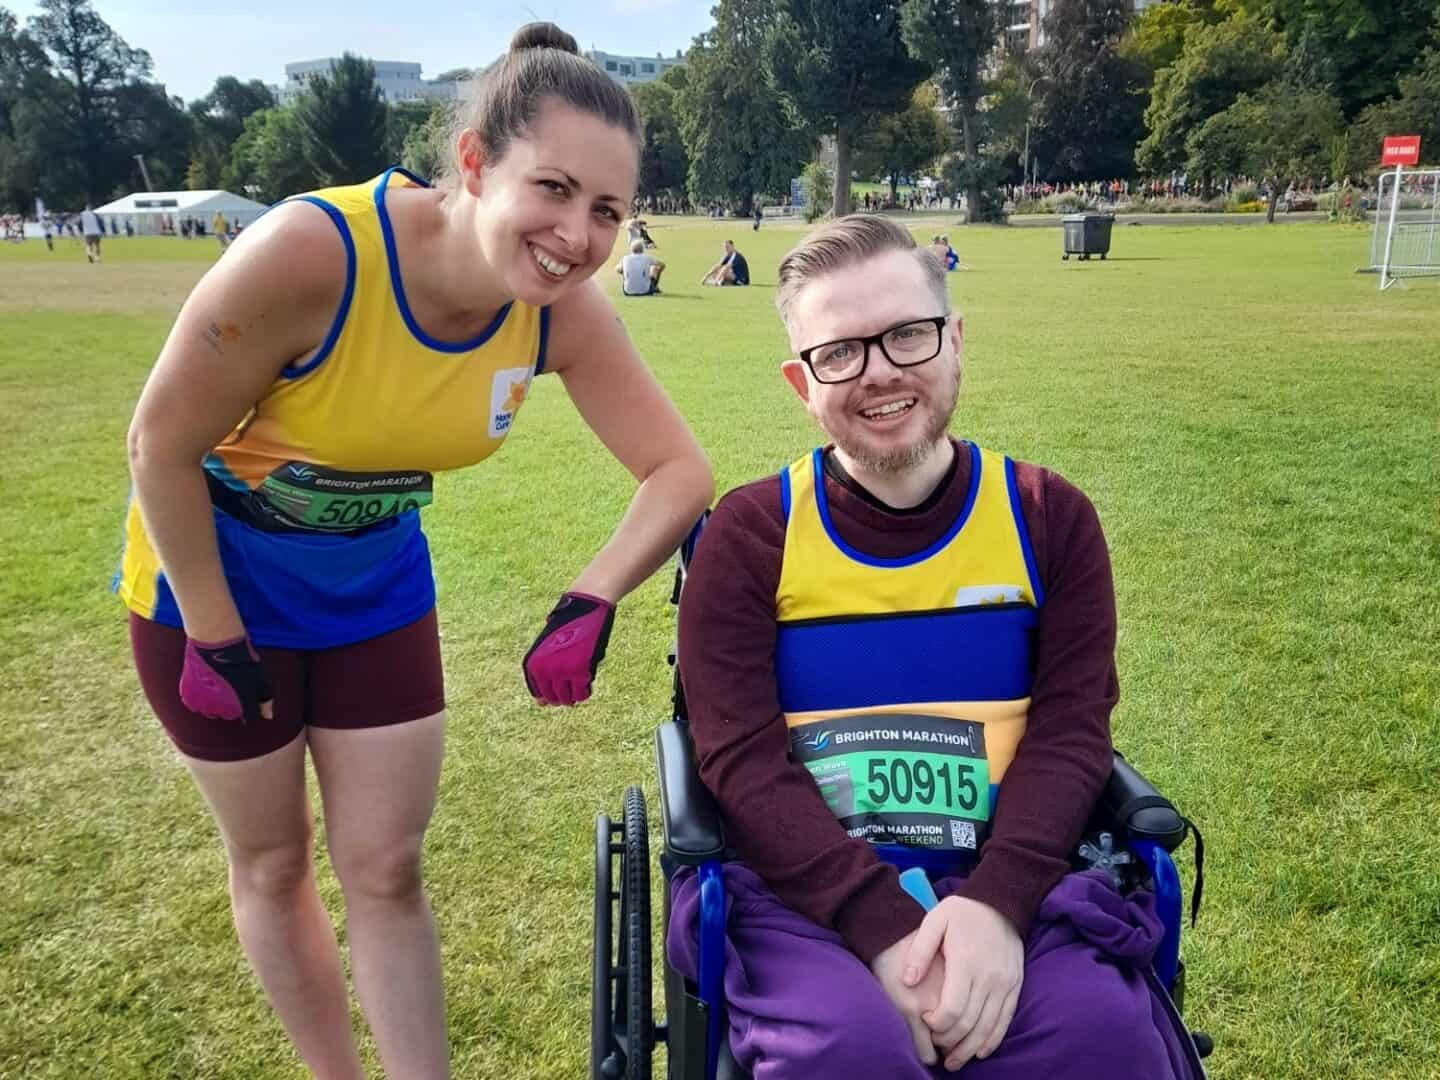 Accessibility: Assisting a wheelchair athlete in the Brighton Marathon